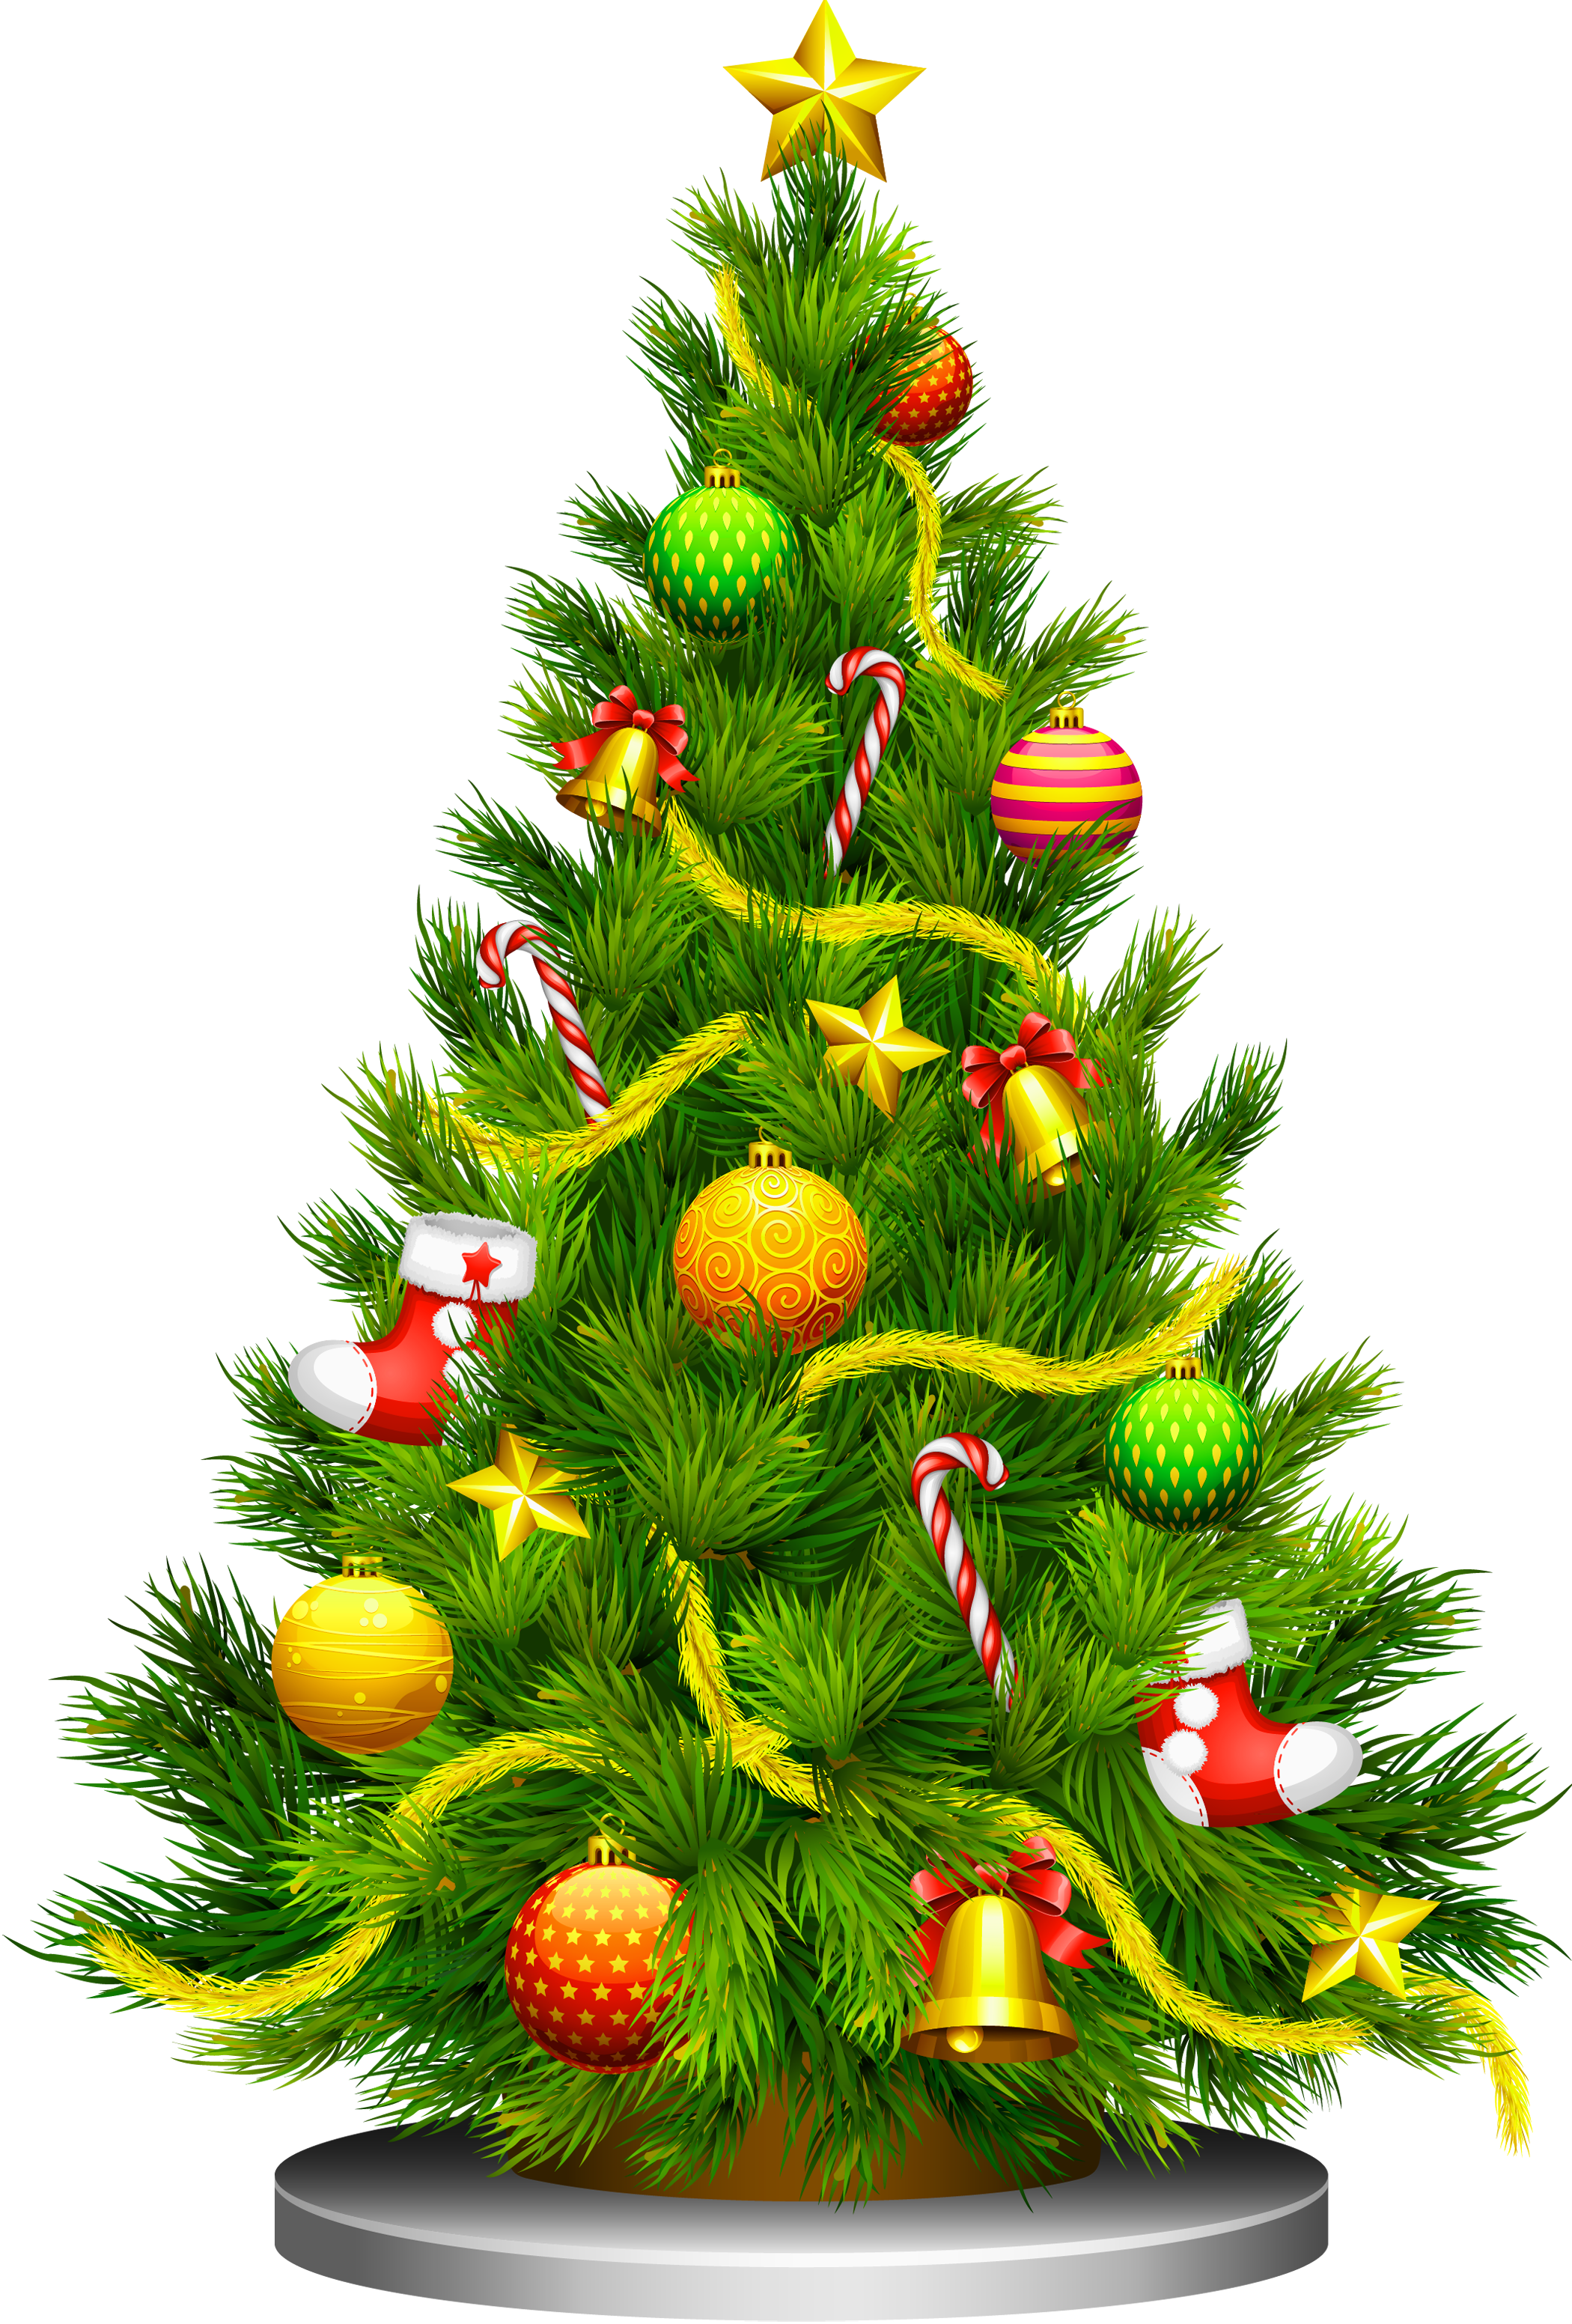 Bad christmas decorations cliparts transparent stock christmas tree - Free Large Images | Things to Wear | Christmas tree ... transparent stock